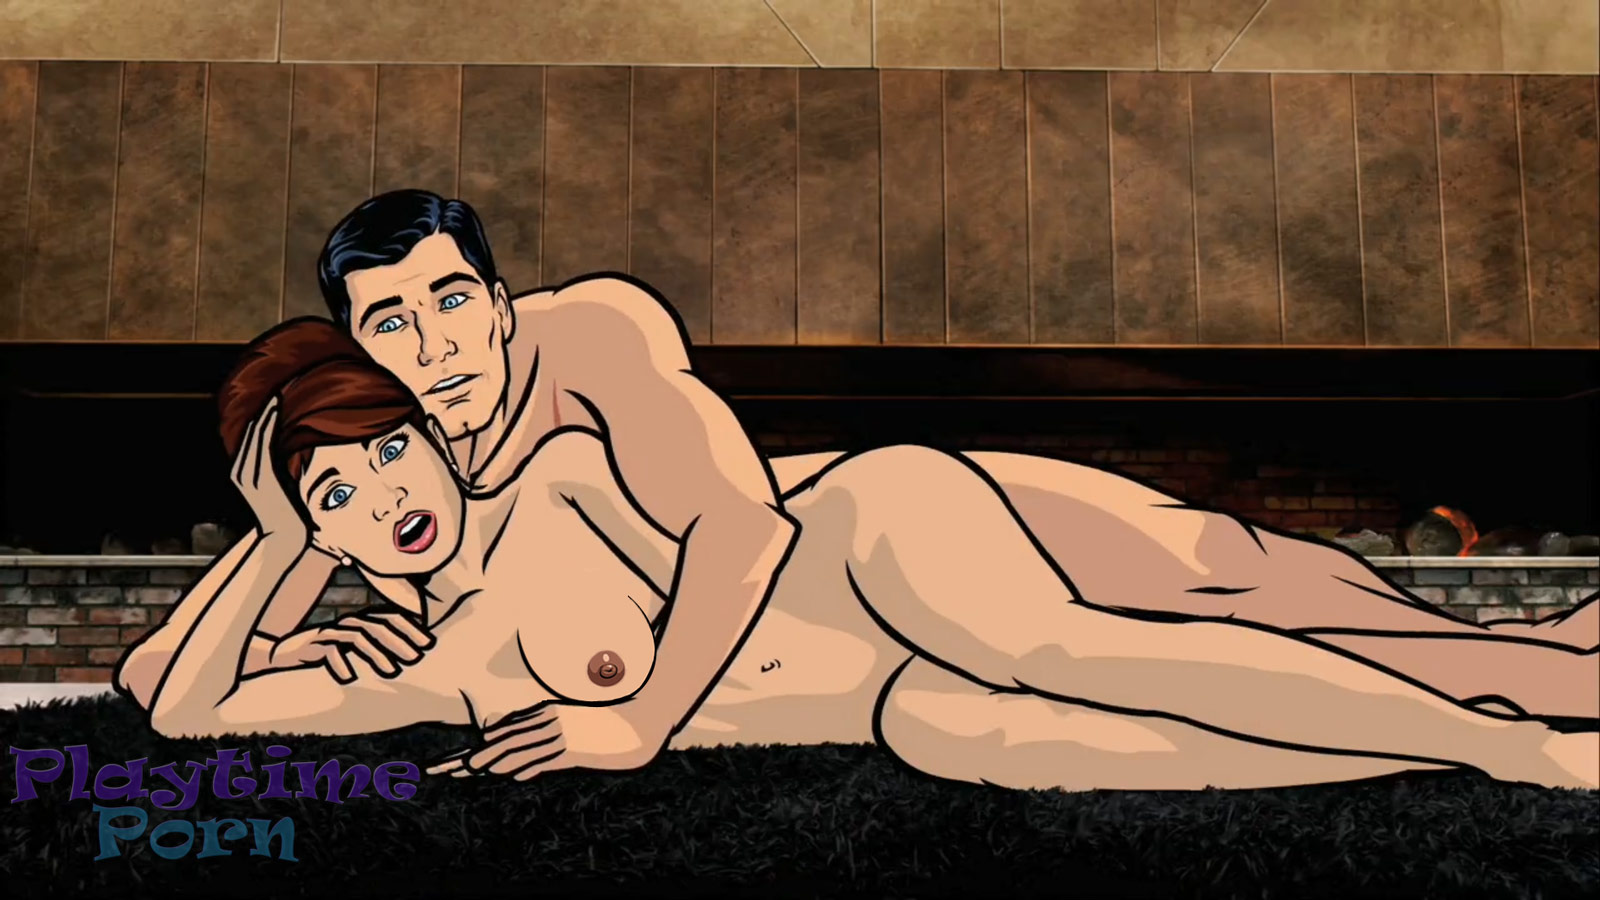 archer porno Apr 2015  The executive producer of the hilarious FX animated spy series Archer dishes on  that Season 6 finale, bouncing boobs, the Krieger reveal, and .